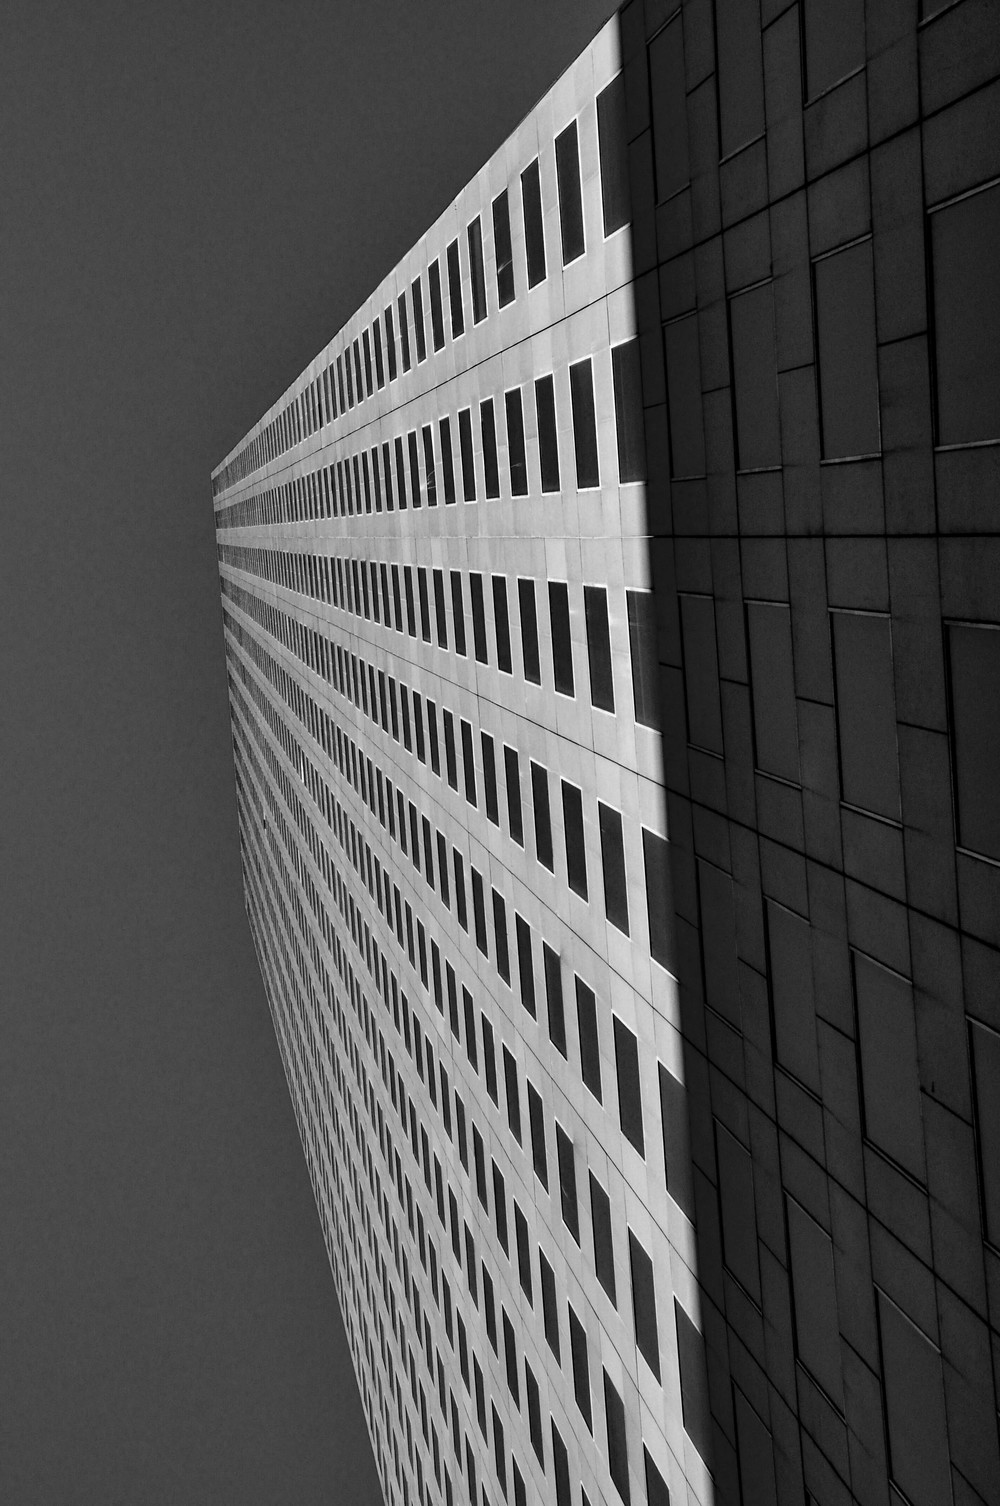 Infinity  Houston, Texas  ©Copyright 2015 Bridget Barnes